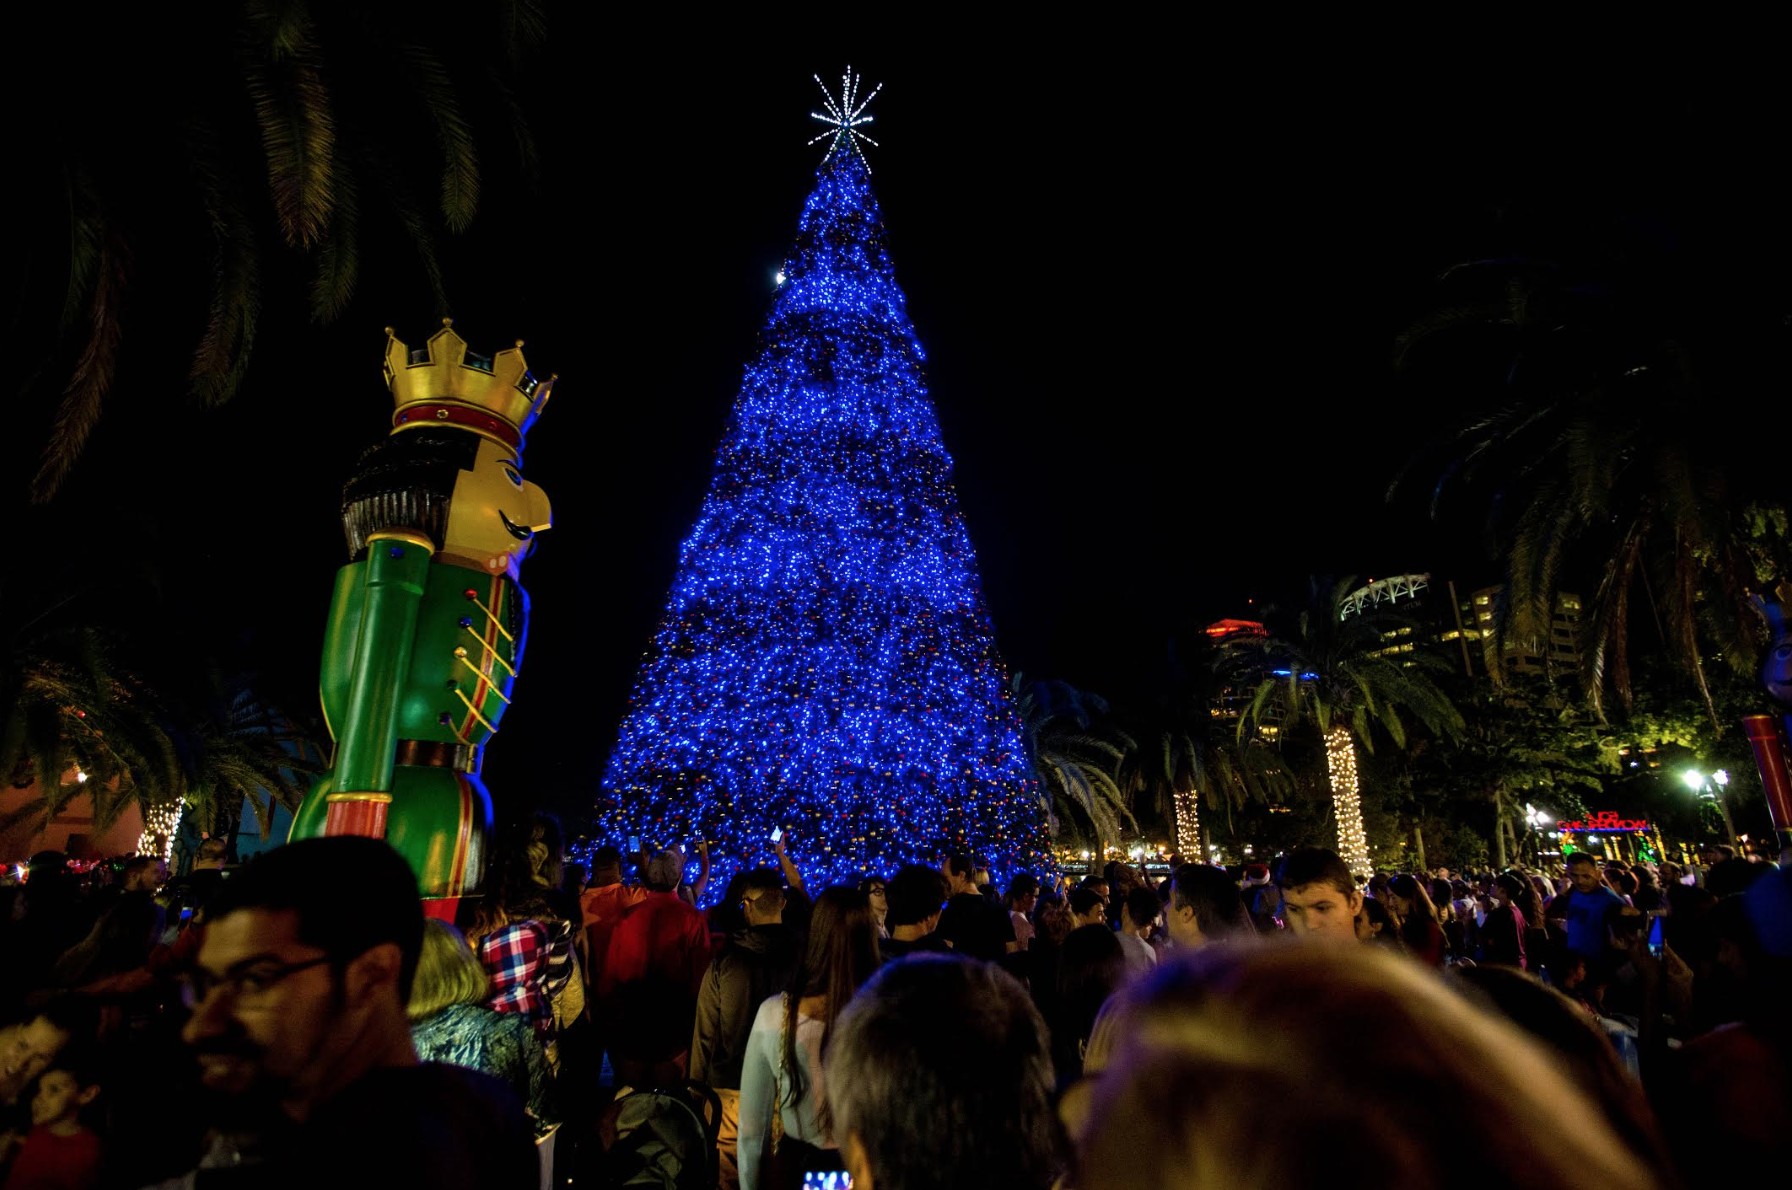 Tree lighting: image of Christmas tree lighting ceremony in downtown Orlando